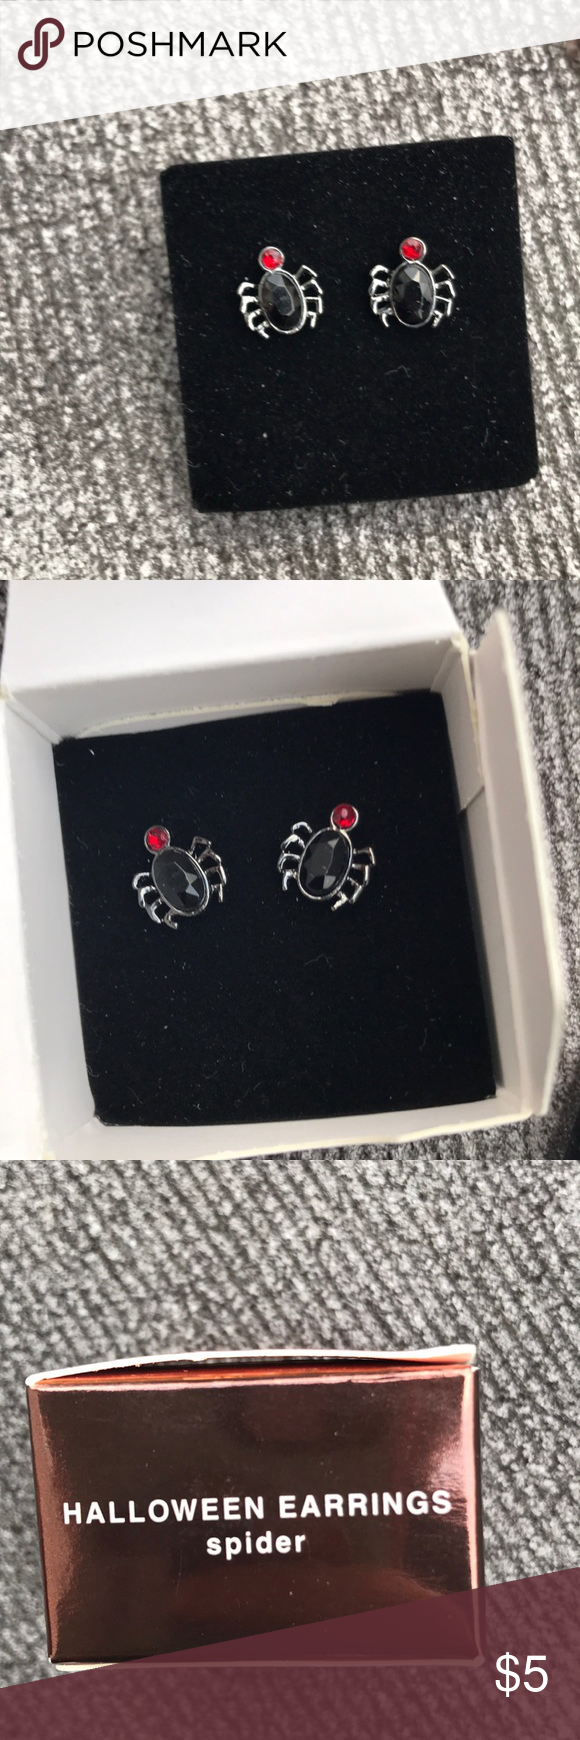 Small Spider Earrings From the Halloween collection a small pair of spider earrings. Has a little red gem for the head. Perfect to top off a spooky outfit. Happy Poshing!  Small Spider Earrings From the Halloween collection a small pair of spider earrings. Has a little red gem for the head. Perfect to top off a spooky outfit. Happy Poshing! #spookyoutfits